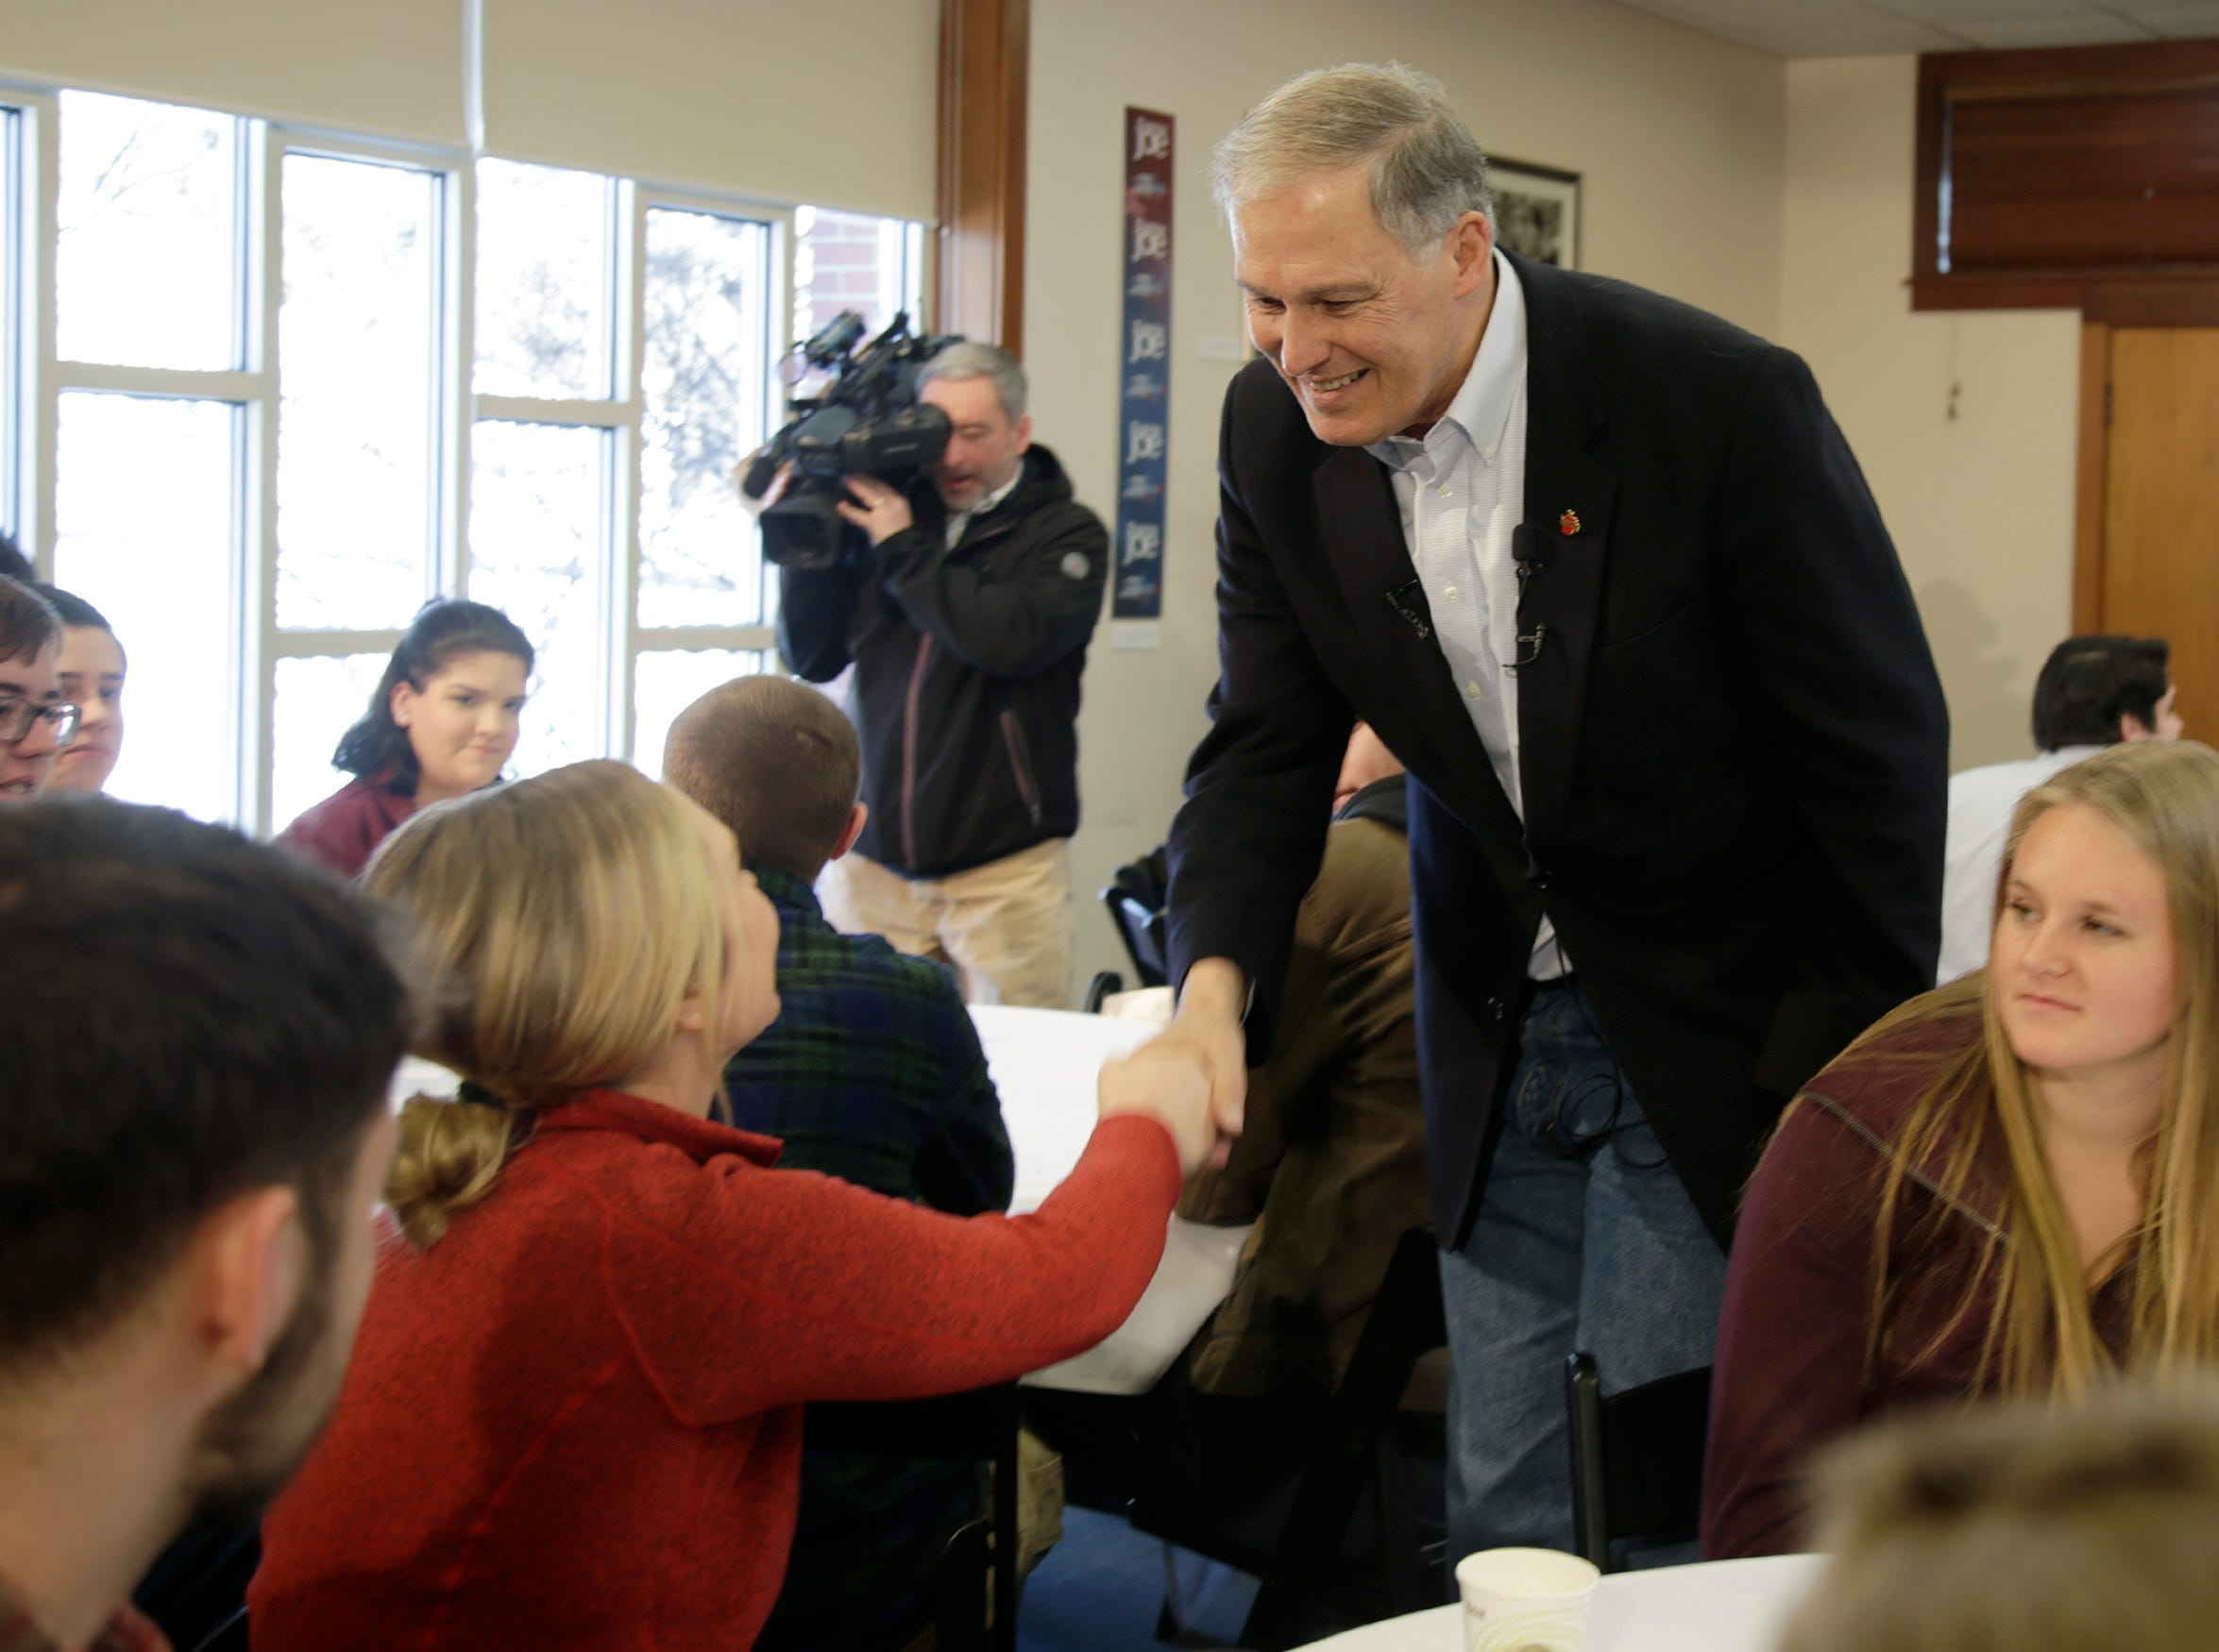 Washington Gov. Jay Inslee shakes hands with students after speaking at Saint Anselm College, Tuesday, Jan. 22, 2019, in Manchester, N.H.